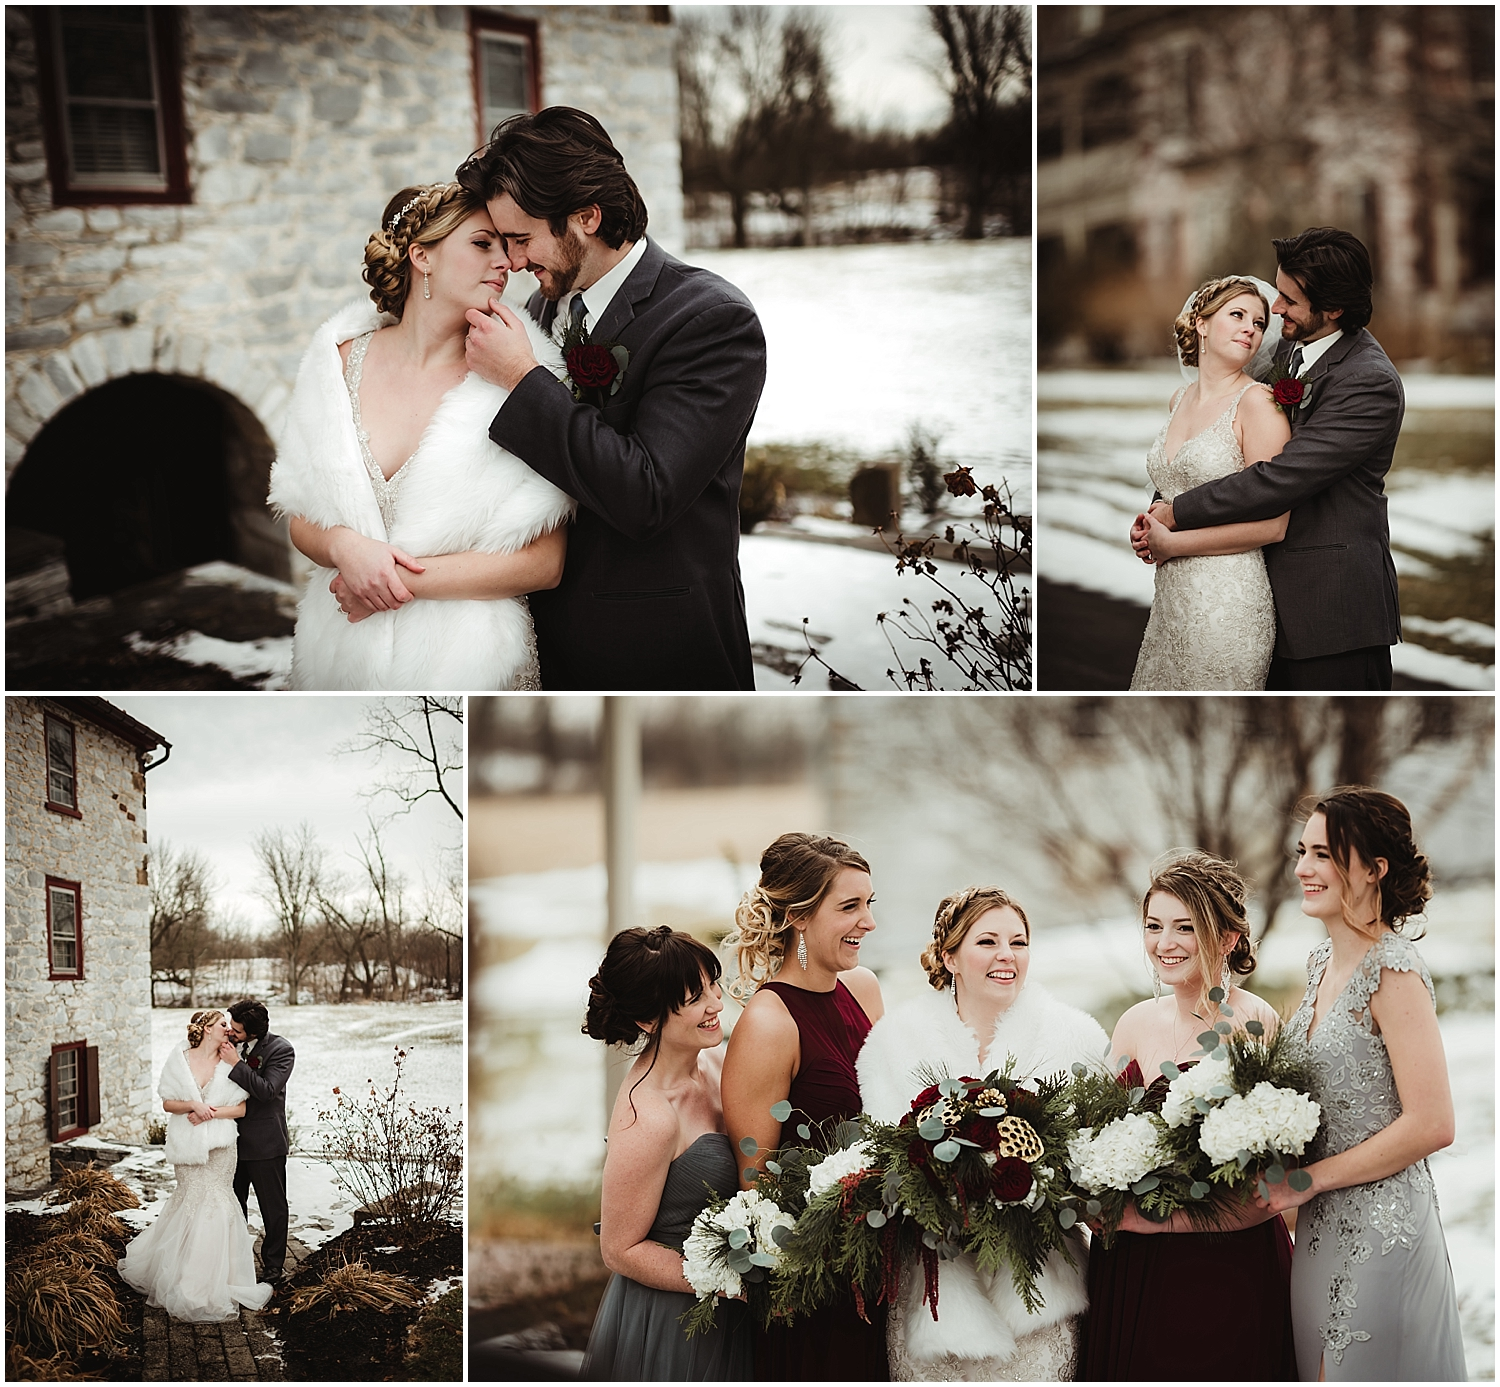 Winter Wedding at the Tulpehocken Manor in Myerstown PA by NEPA Wedding Photographer